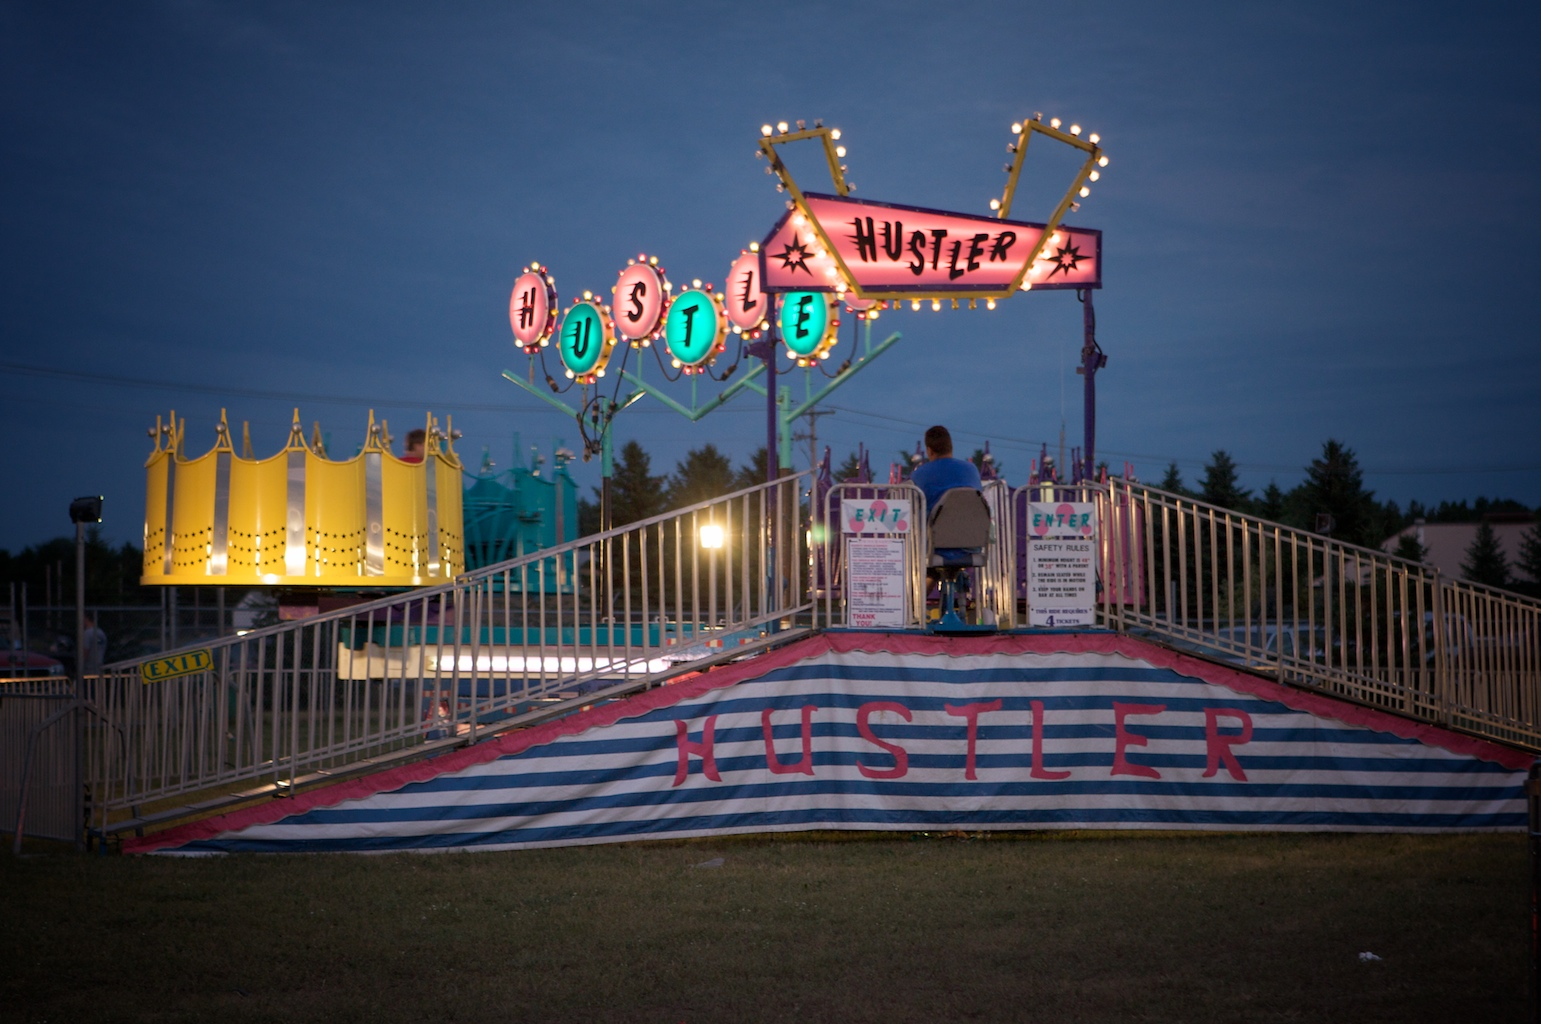 A carnie convention and Giant's boot!